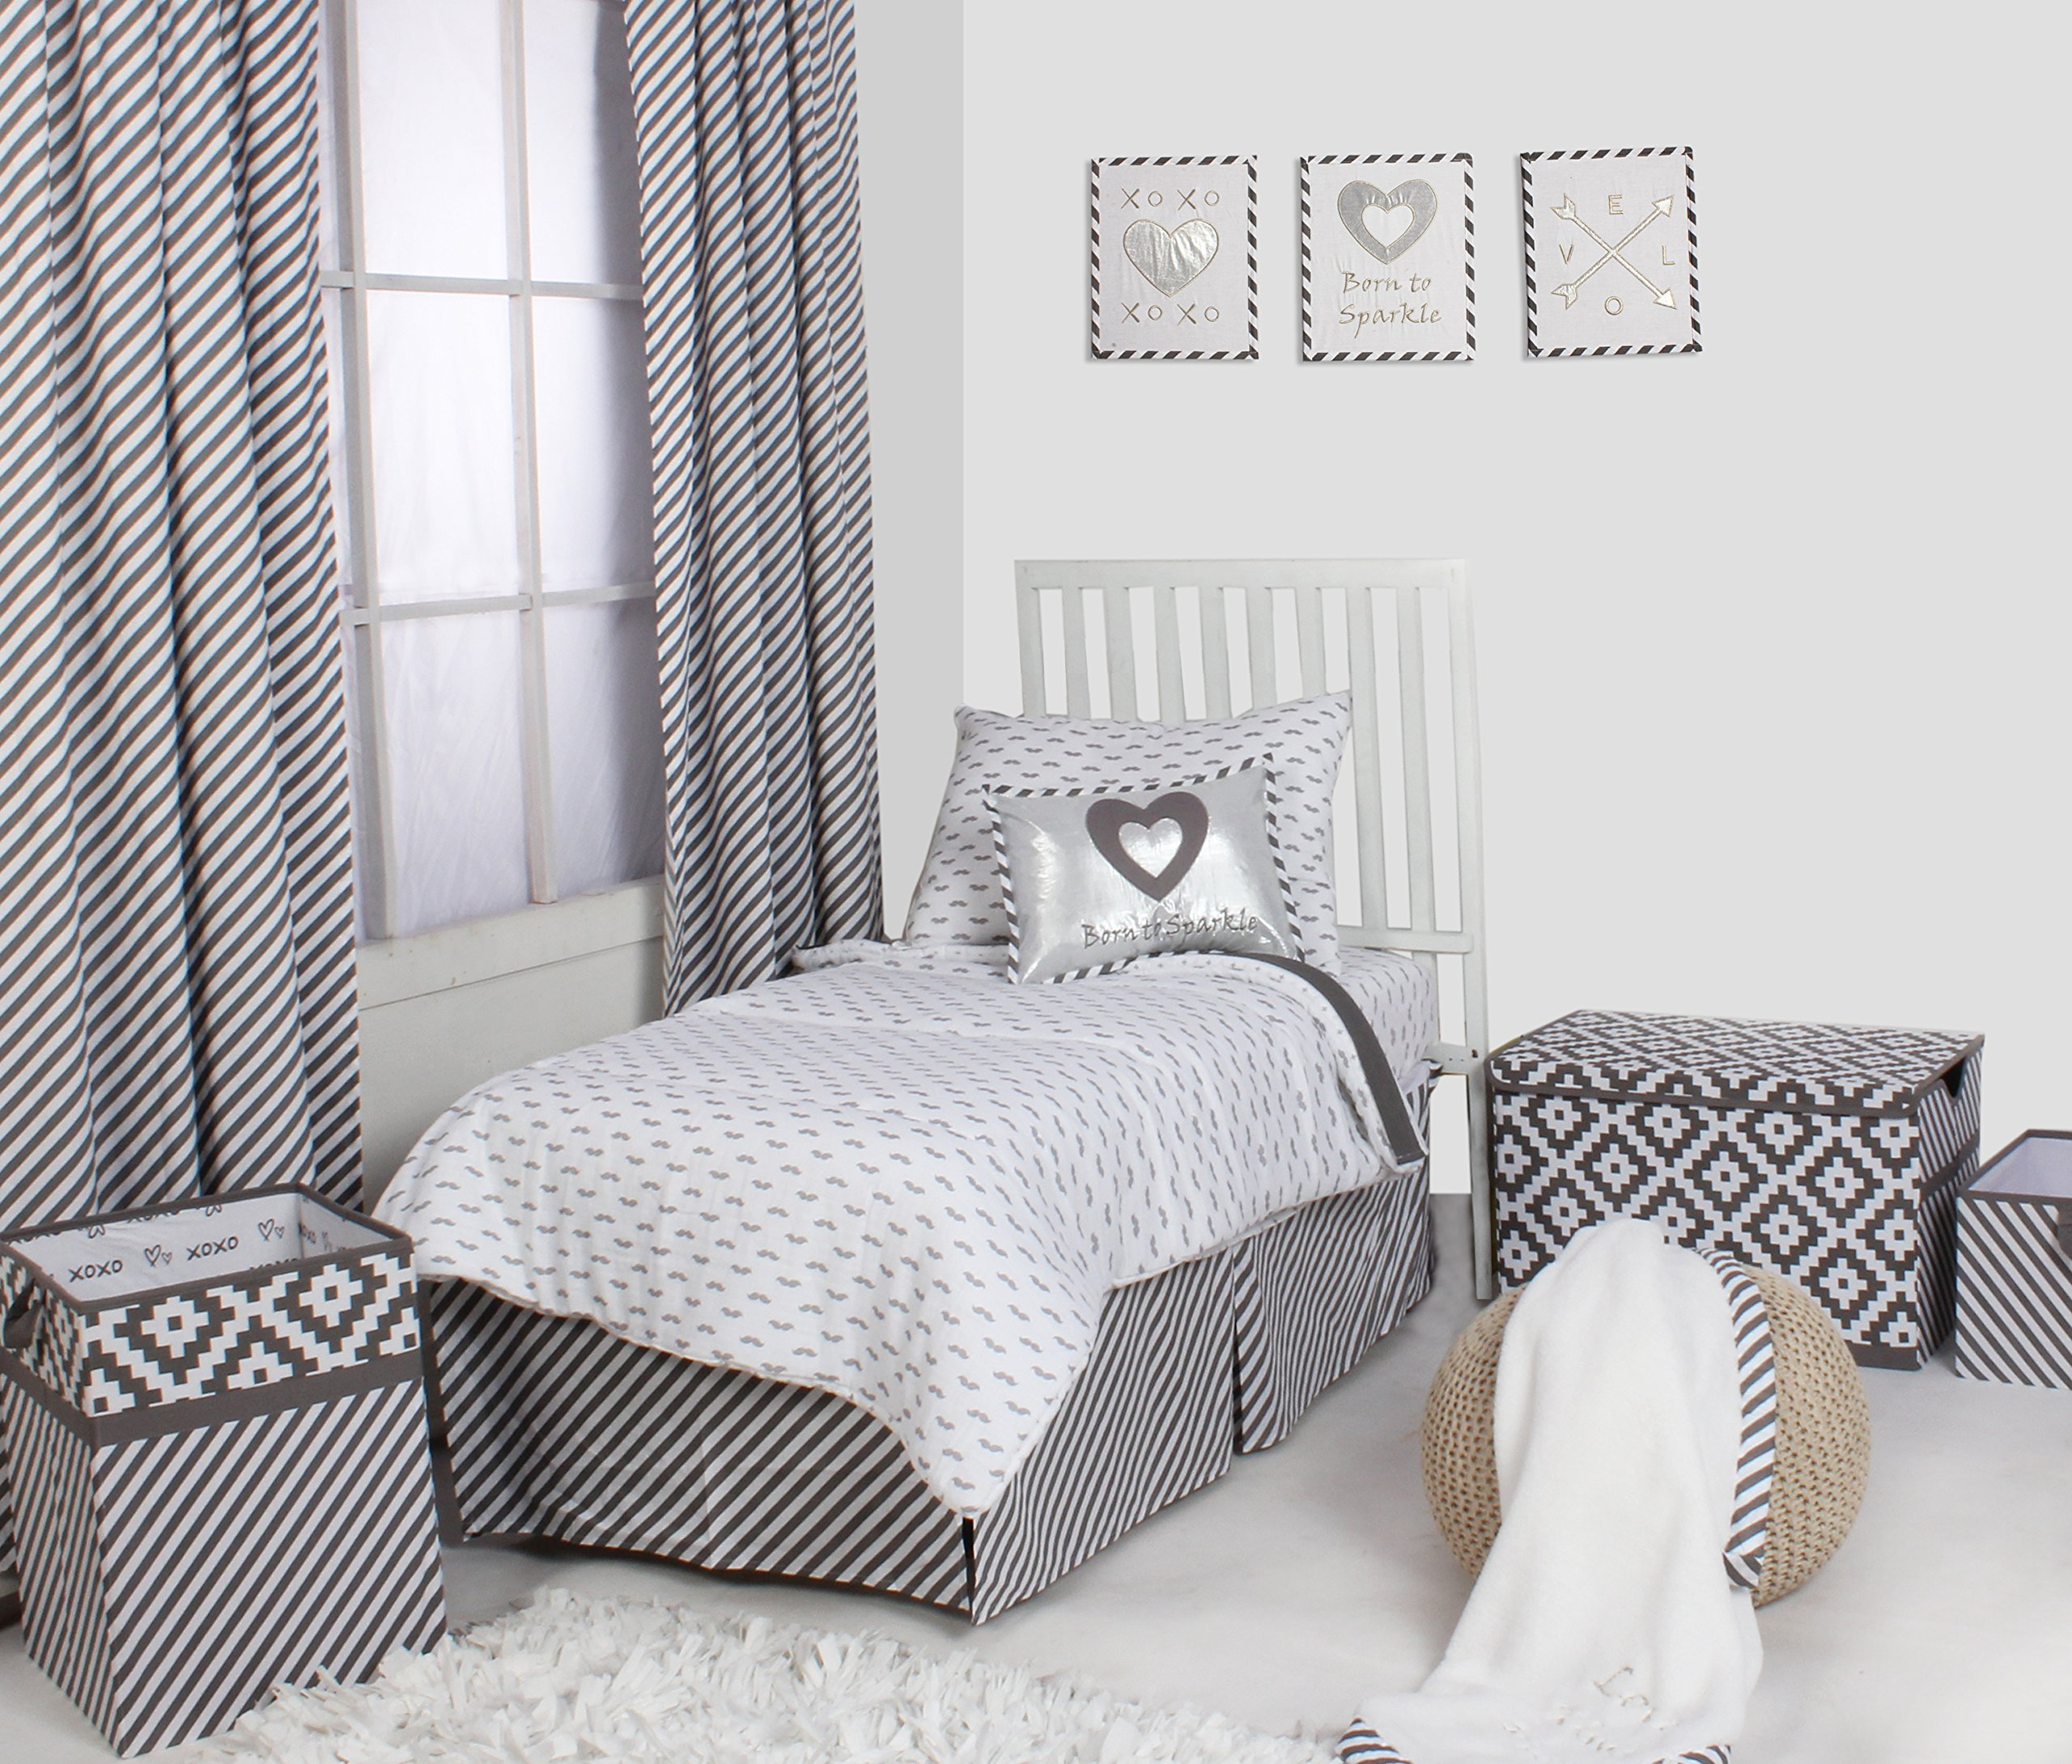 Bacati Moustache/Plus Unisex Muslin 4 Piece Toddler Bedding Set, Grey